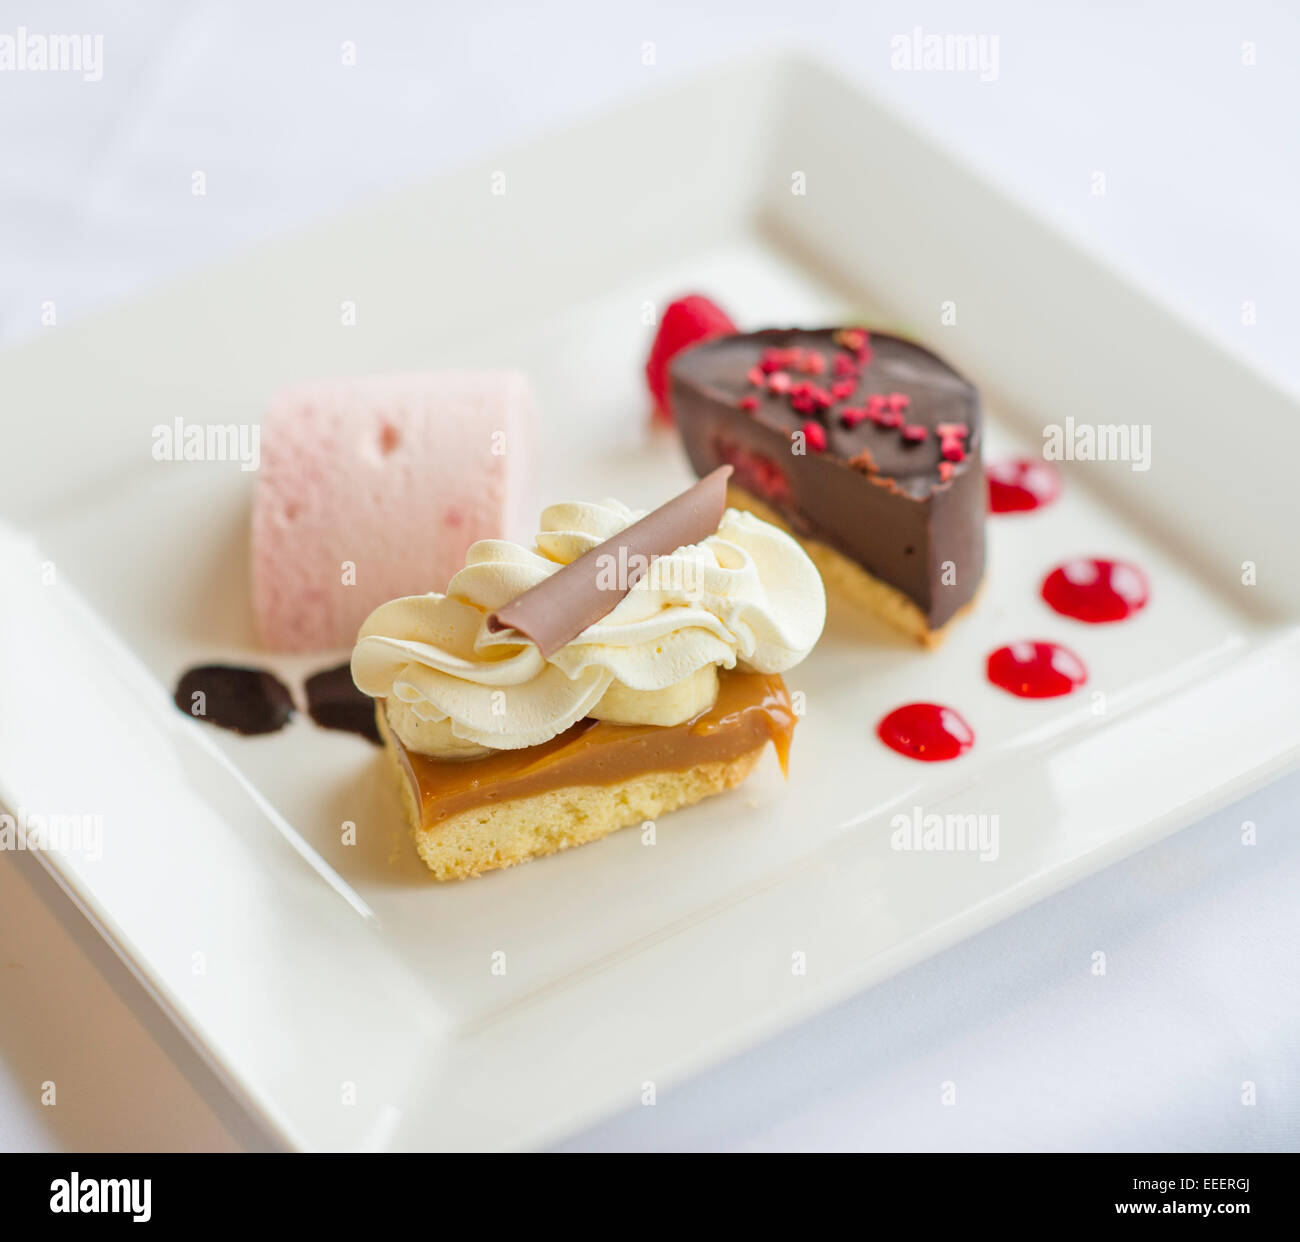 dessert dish in a restaurant - Stock Image